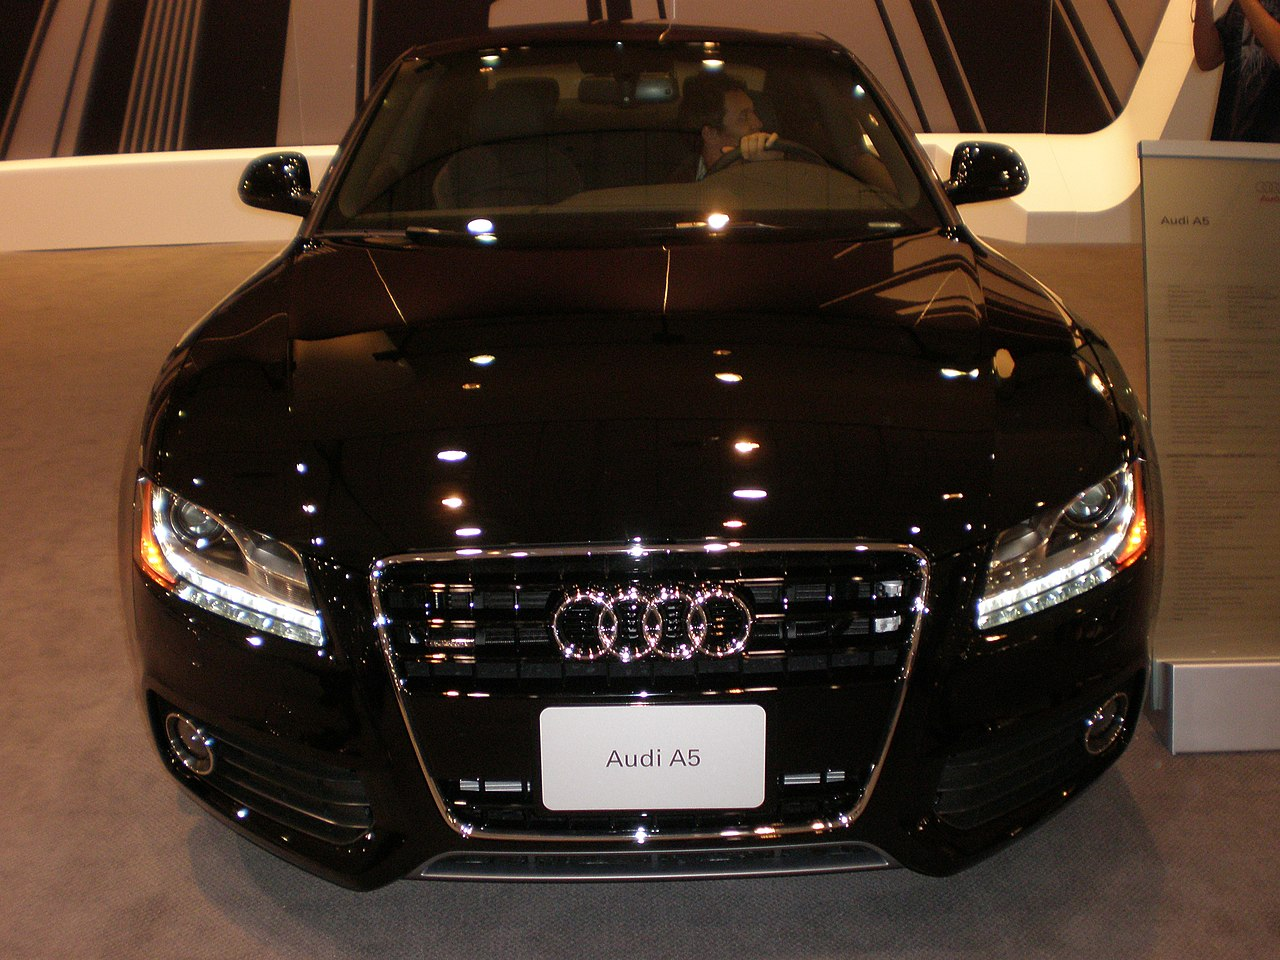 file 2009 black audi a5 front jpg wikimedia commons. Black Bedroom Furniture Sets. Home Design Ideas